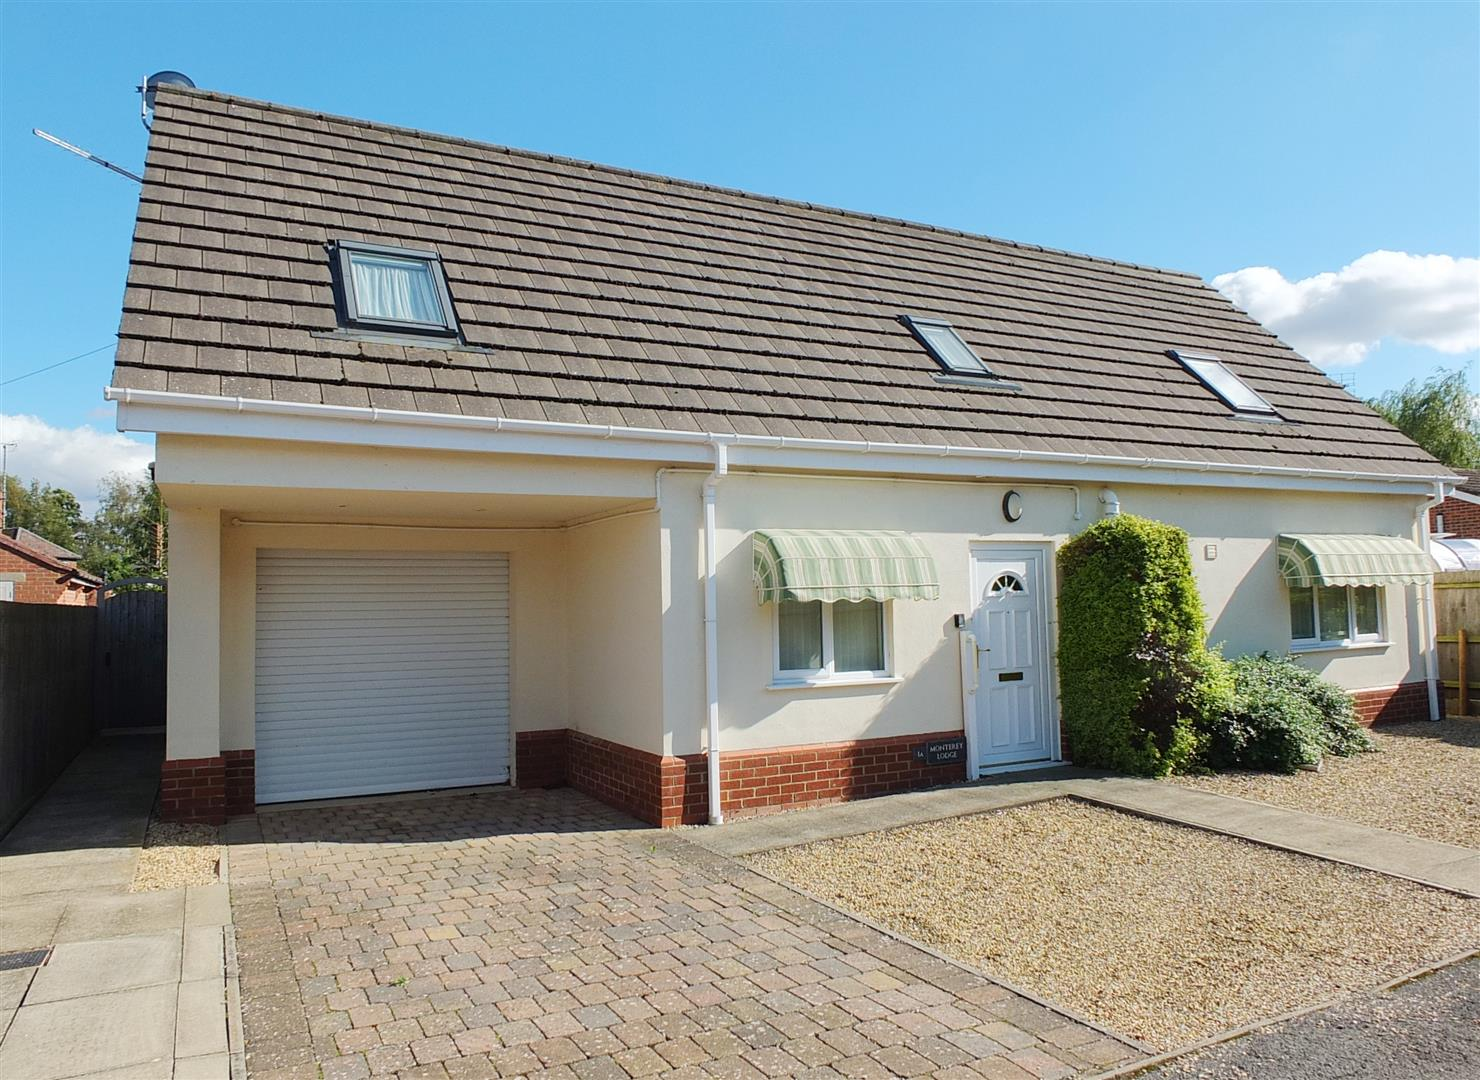 3 bed detached bungalow for sale in Long Sutton Spalding, PE12 9EP, PE12